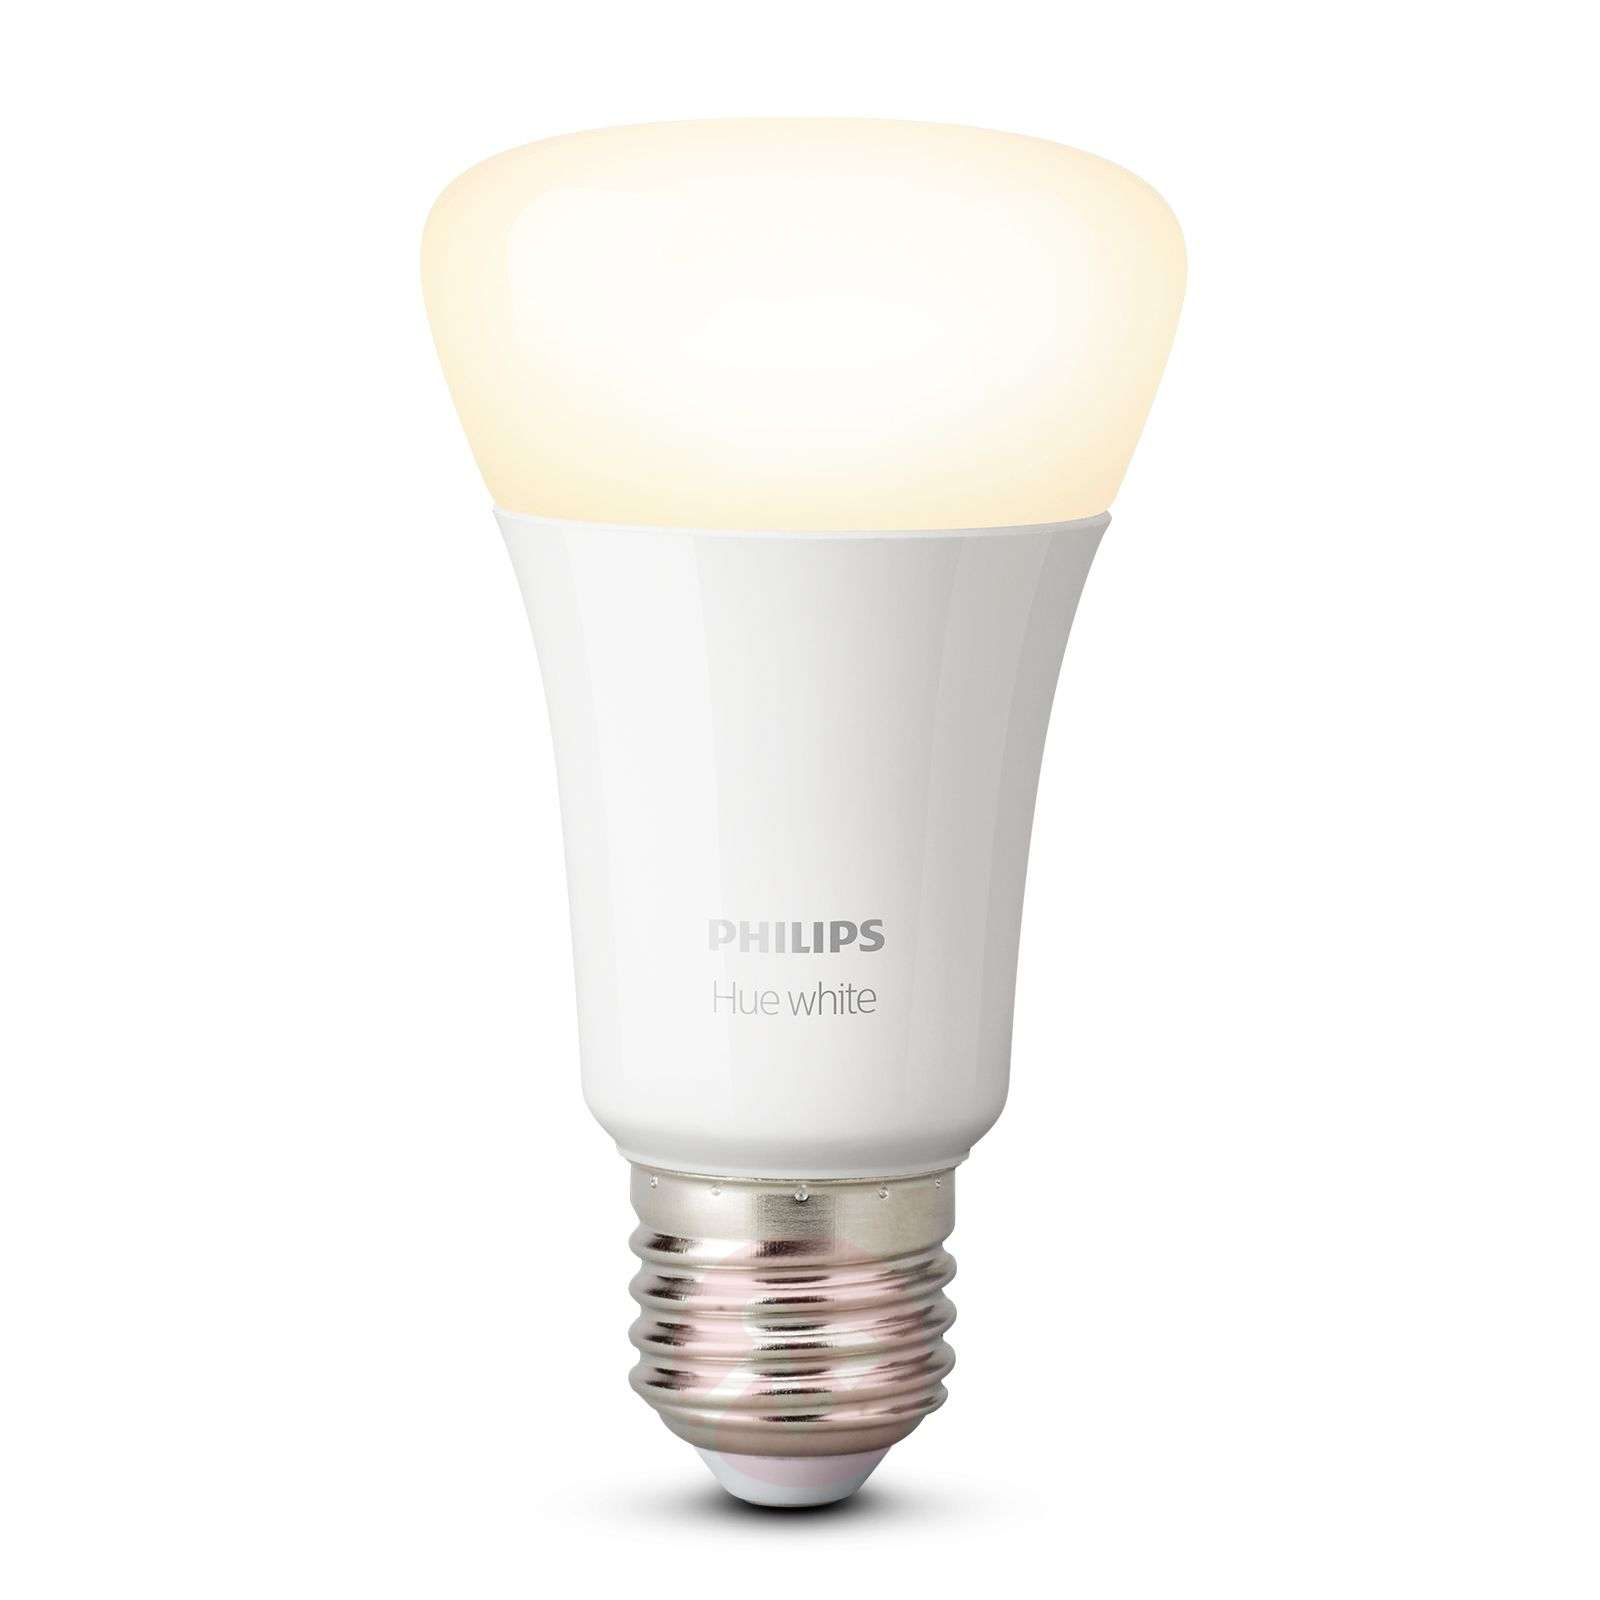 Philips Hue White bombilla LED 9 W E27-7534137-01